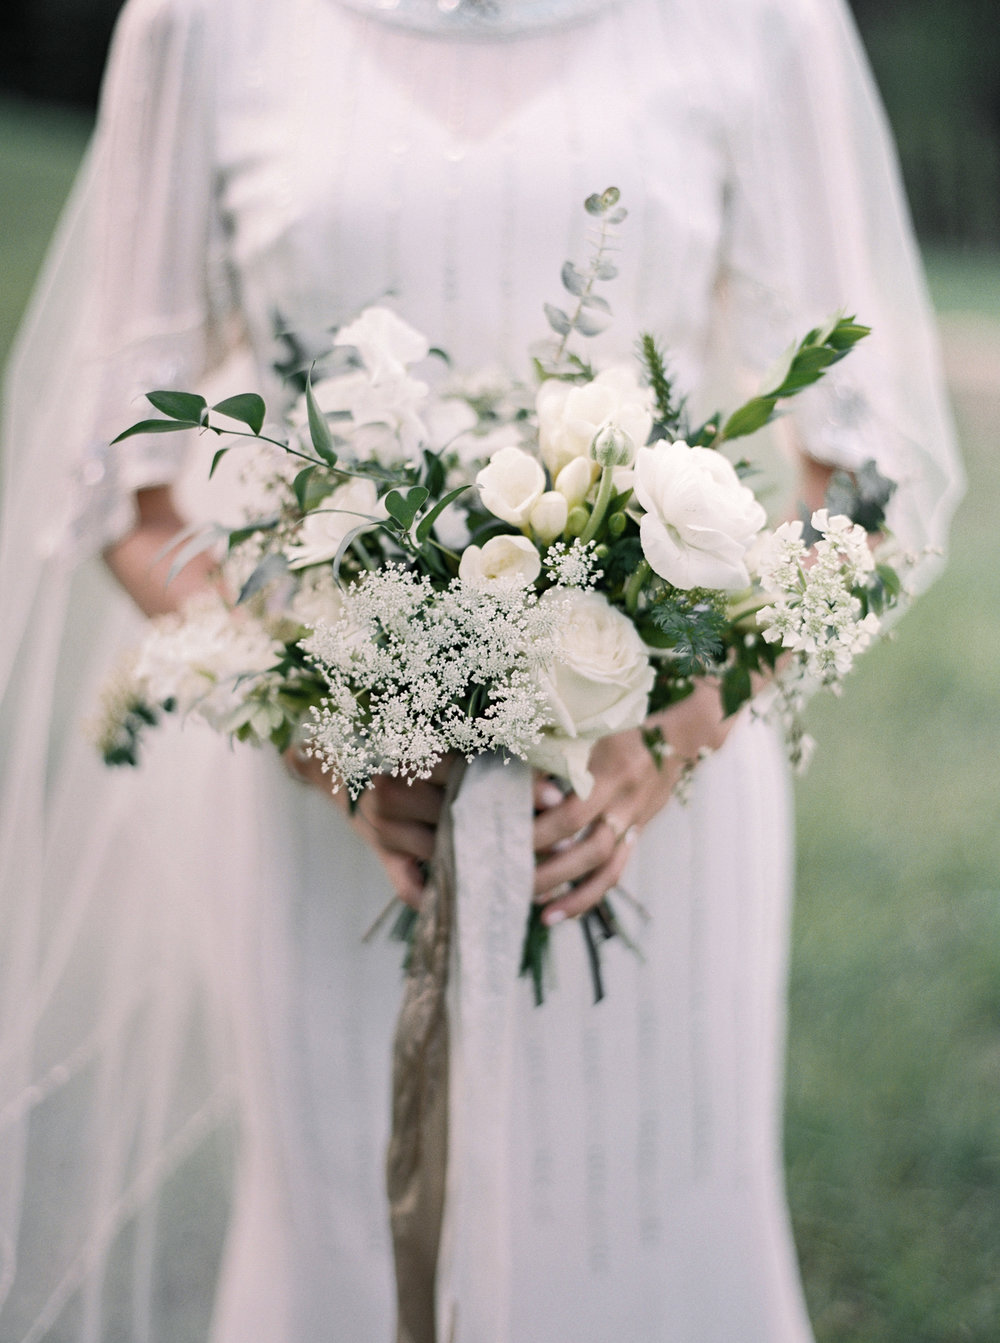 Mila Adams Sundance Utah Wedding Kentucky Louisville Lexington Florist White Garden Style Bohemian Bridal Bouquet